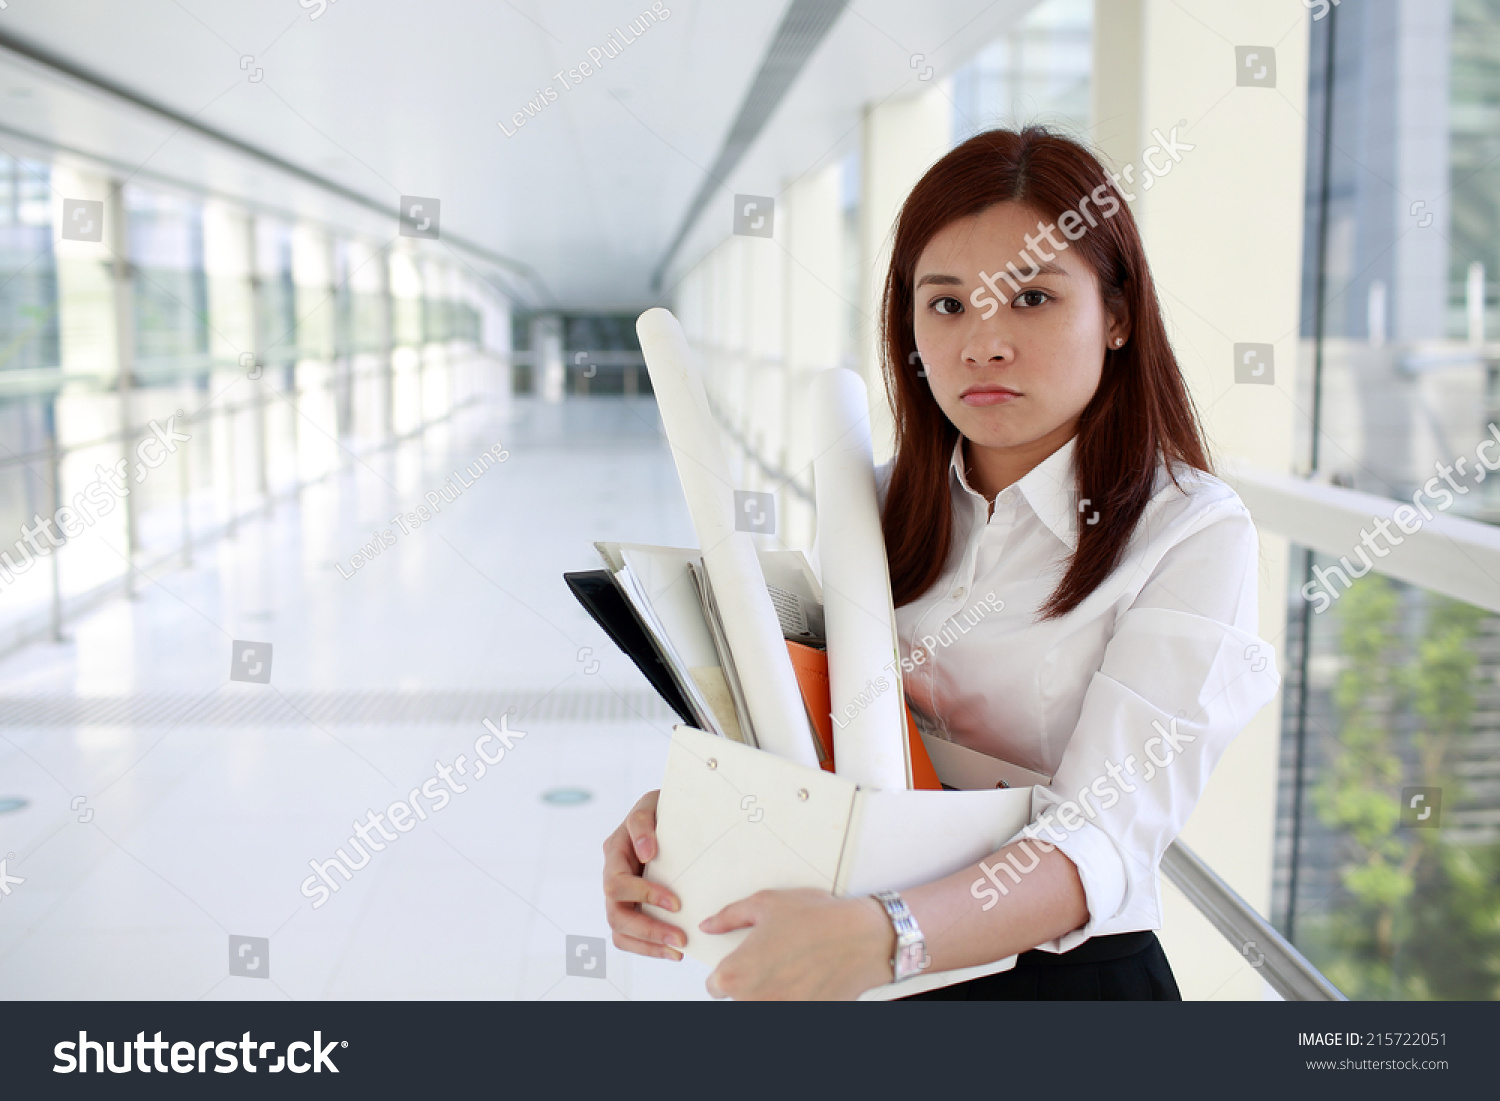 office lady workplace seeking job stock photo shutterstock office lady in workplace seeking job